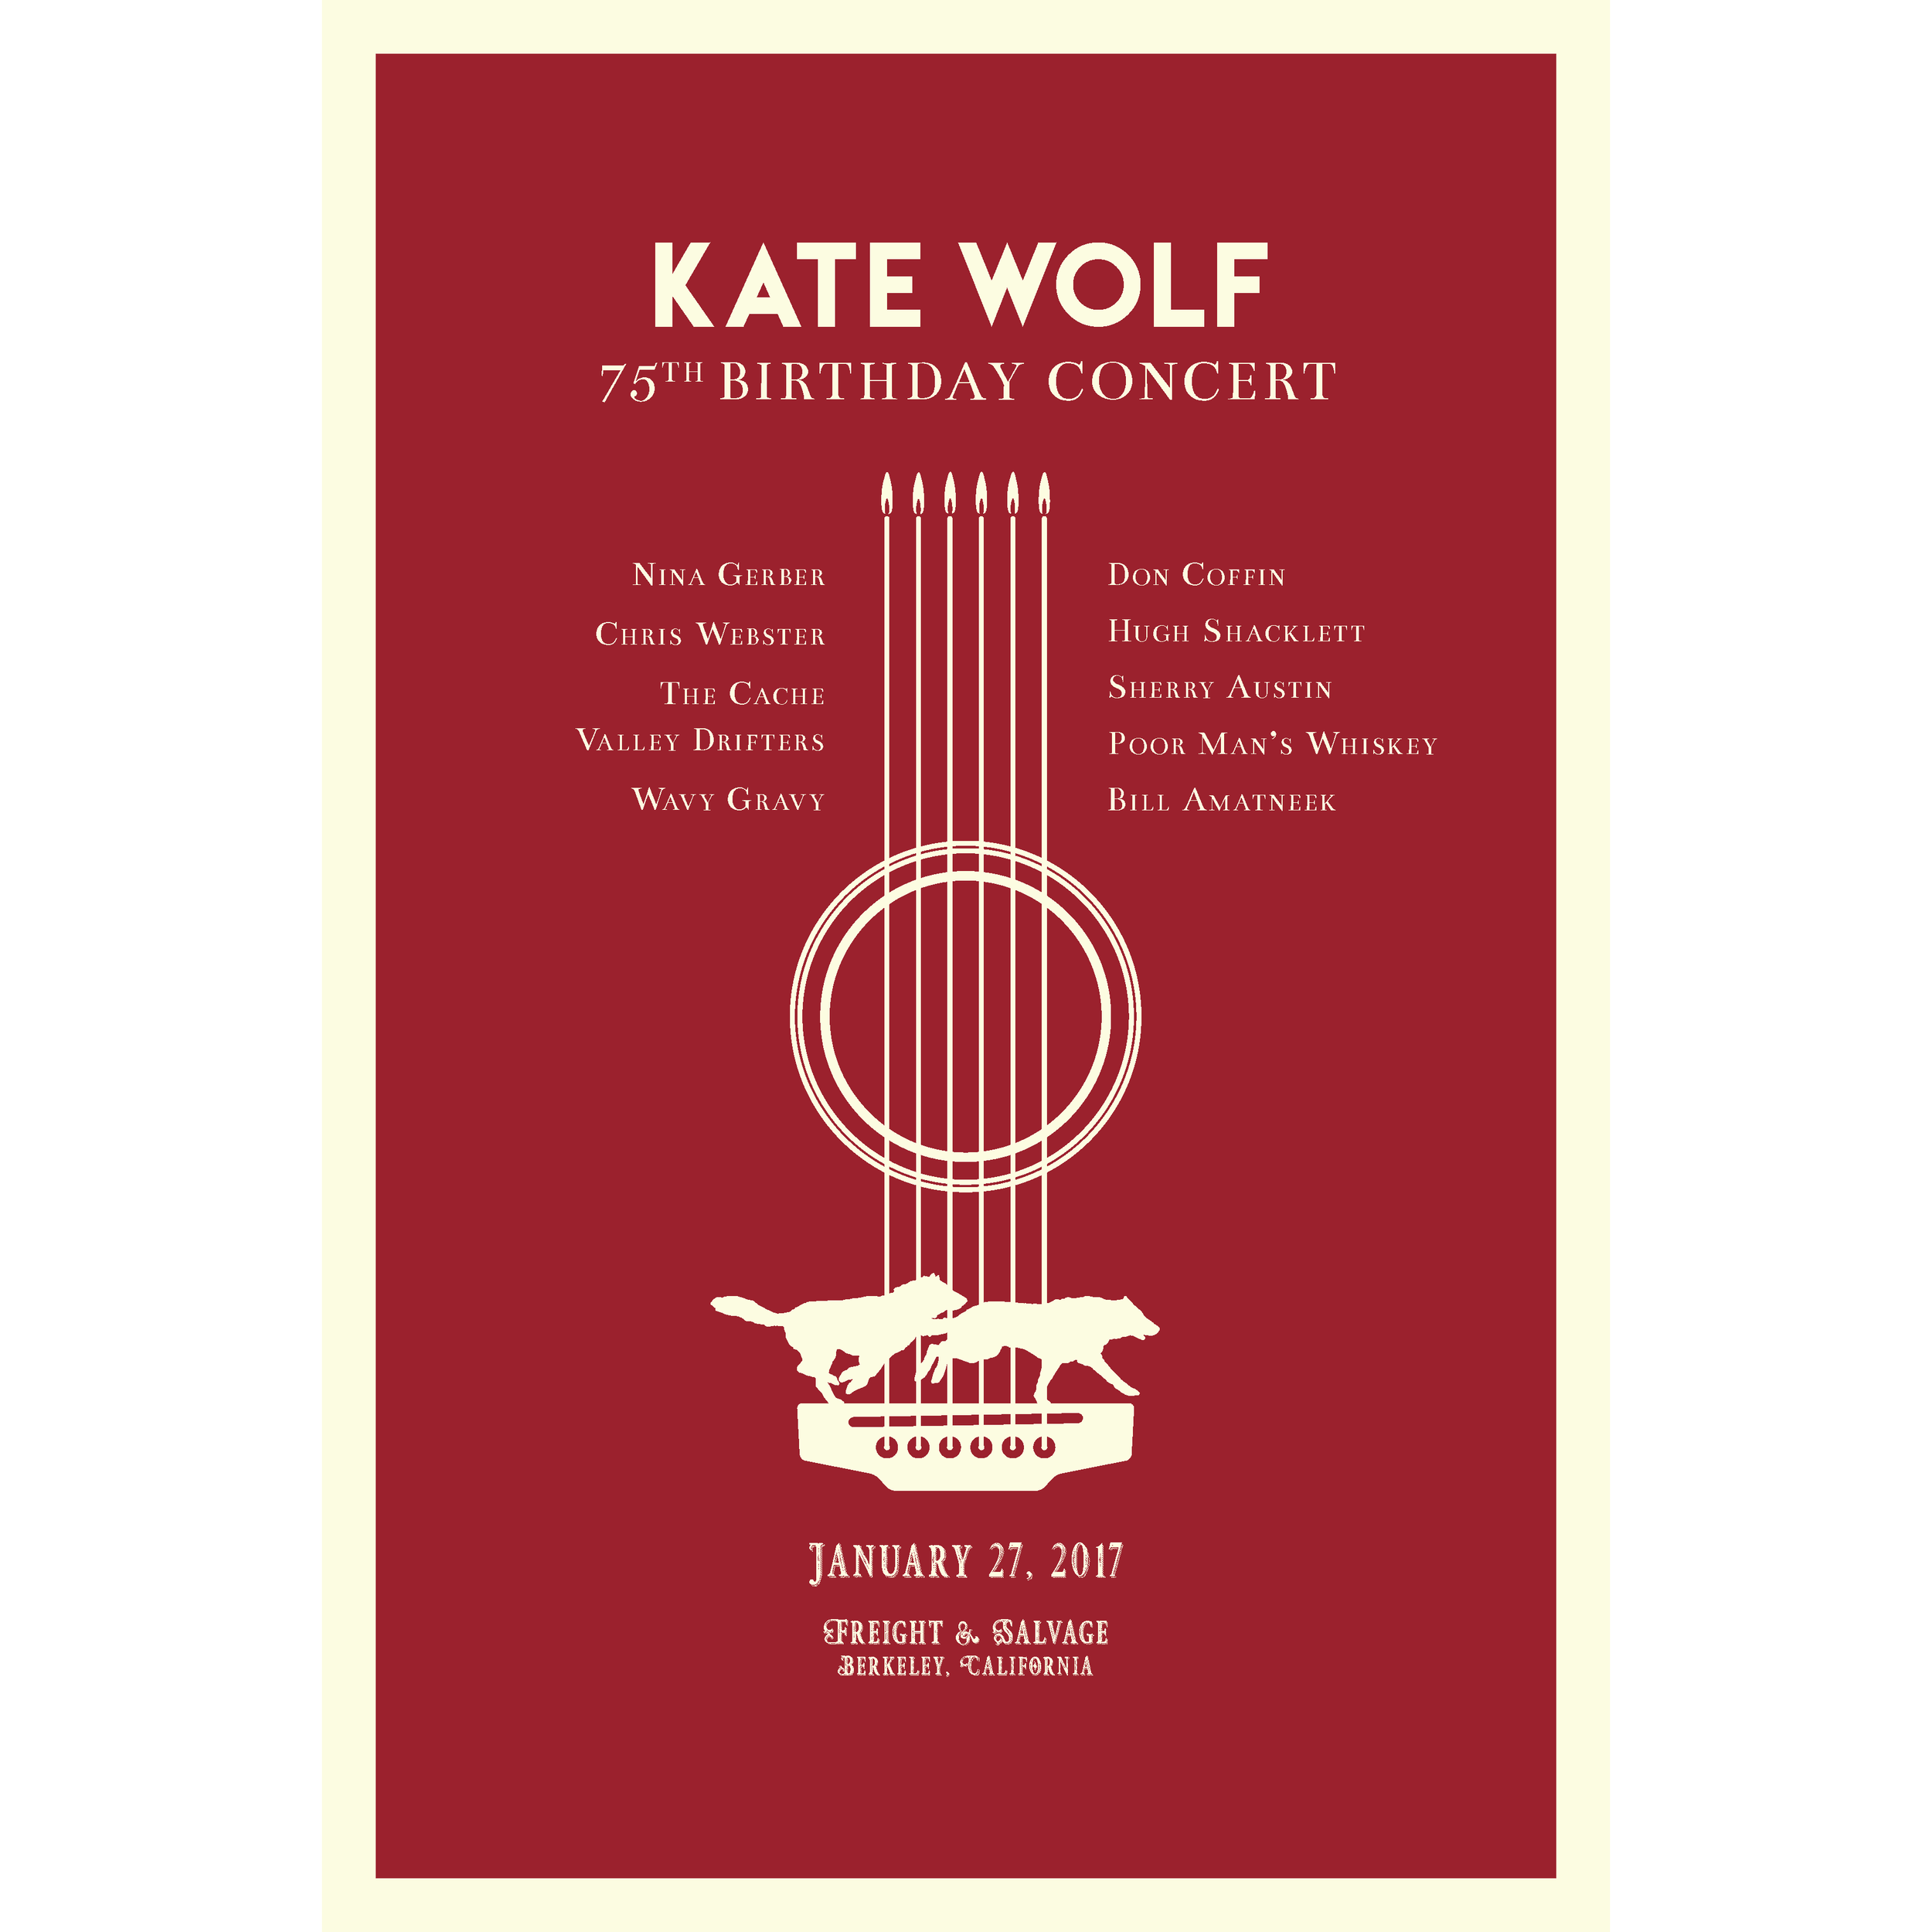 Kate_Wolf_75th_Birthday_Concert_Poster.png